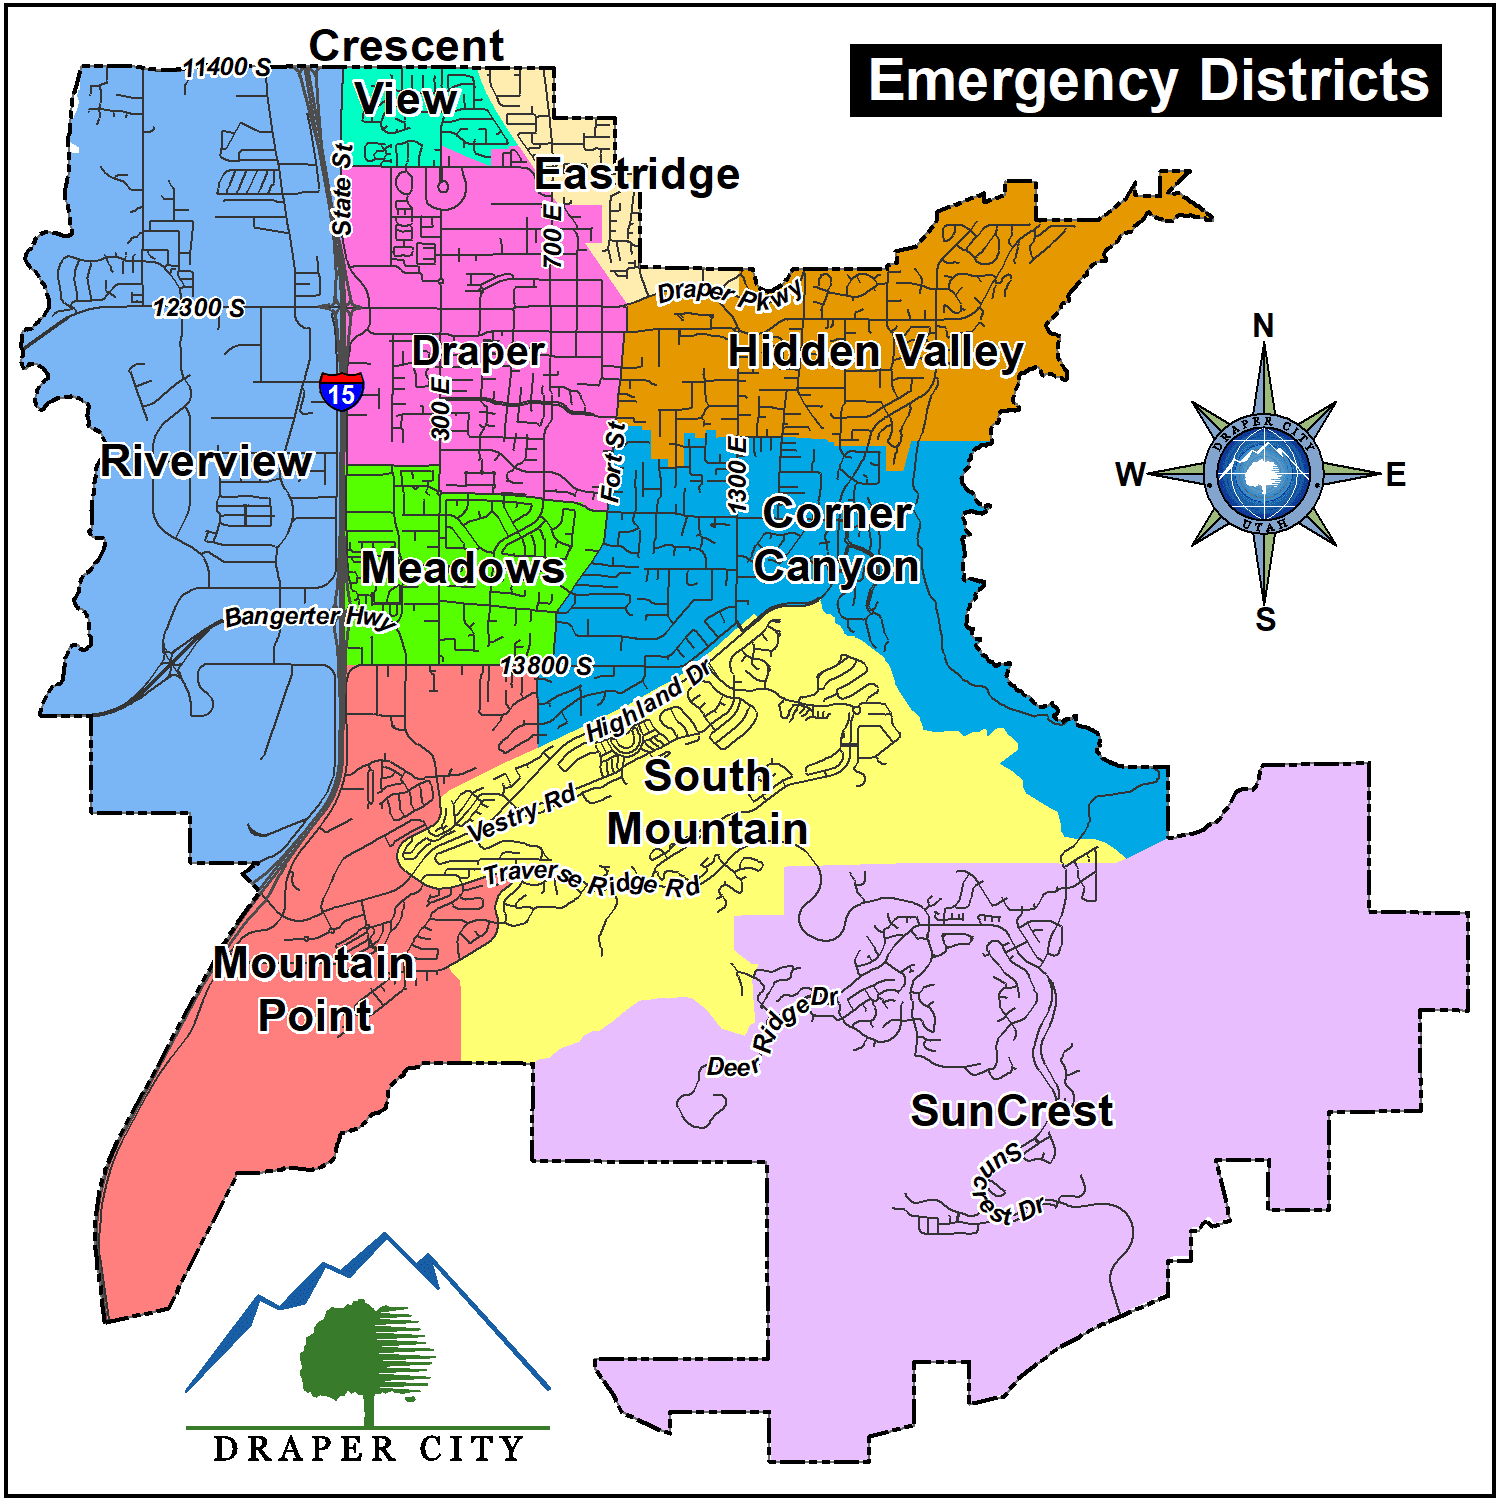 EmergencyServicesDistricts_5x5_INCH